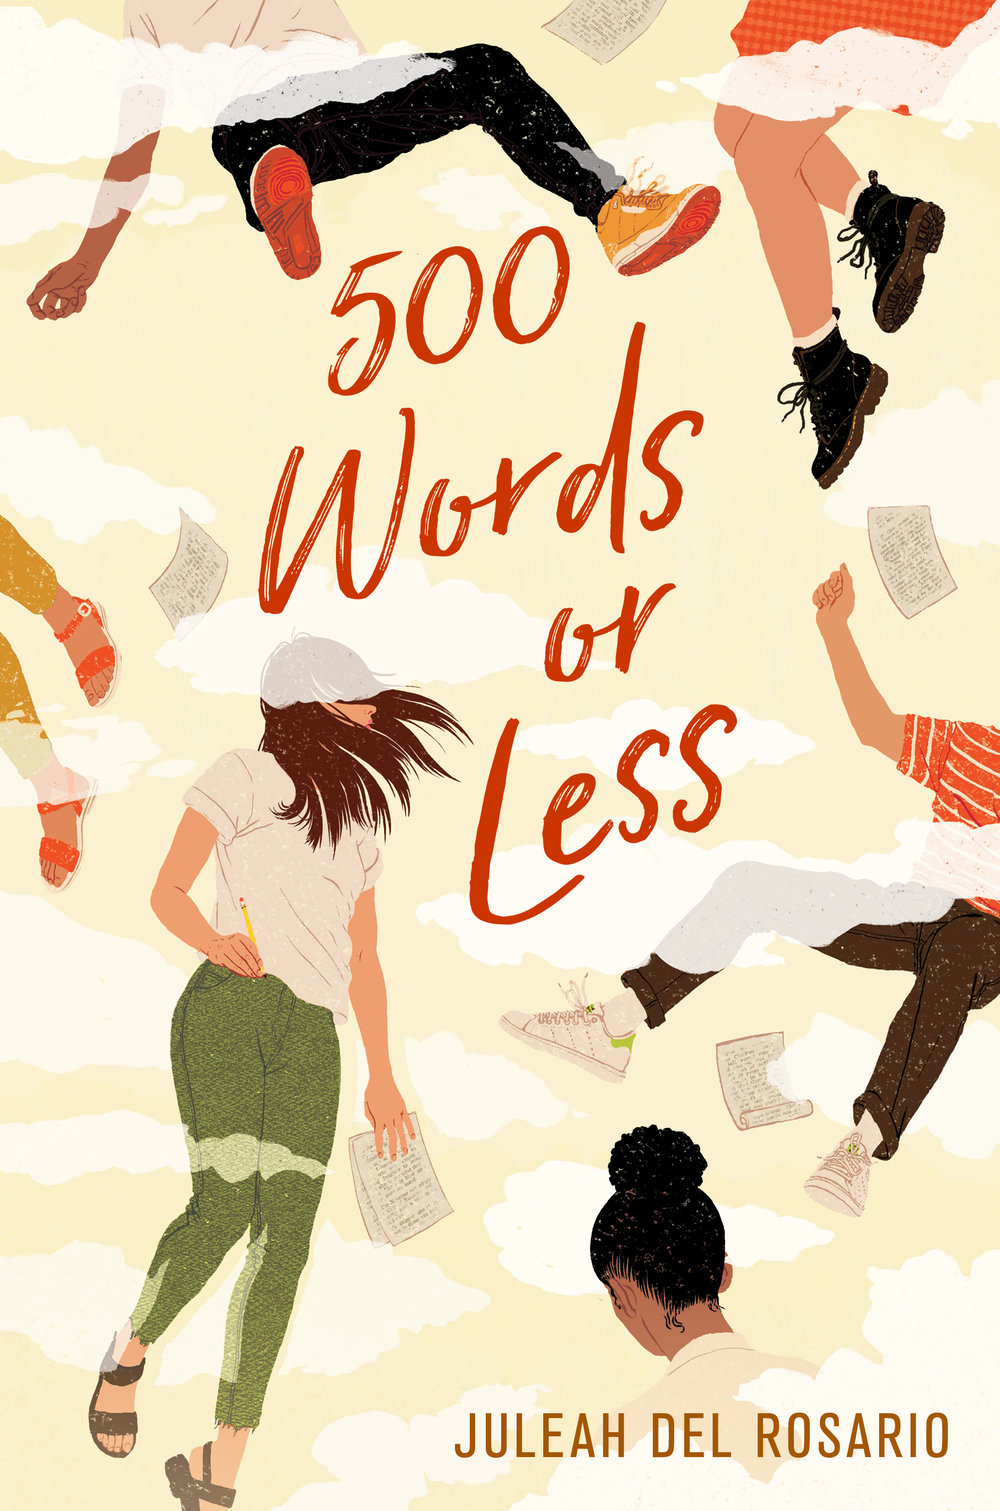 500 Words or Less - Nic Chen refuses to spend her senior year branded as the girl who cheated on her charismatic and lovable boyfriend. To redefine her reputation among her Ivy League–obsessed classmates, Nic begins writing their college admissions essays.But the more essays Nic writes for other people, the less sure she becomes of herself, the kind of person she is, and whether her moral compass even points north anymore.Provocative, brilliant, and achingly honest,500 Words or Lessexplores the heartbreak and hope that marks the search for your truest self.Available 9/25/2018Pre-order now:Amazon, IndieBound, Barnes & NobleFind it at your libraryAdd it to Goodreads